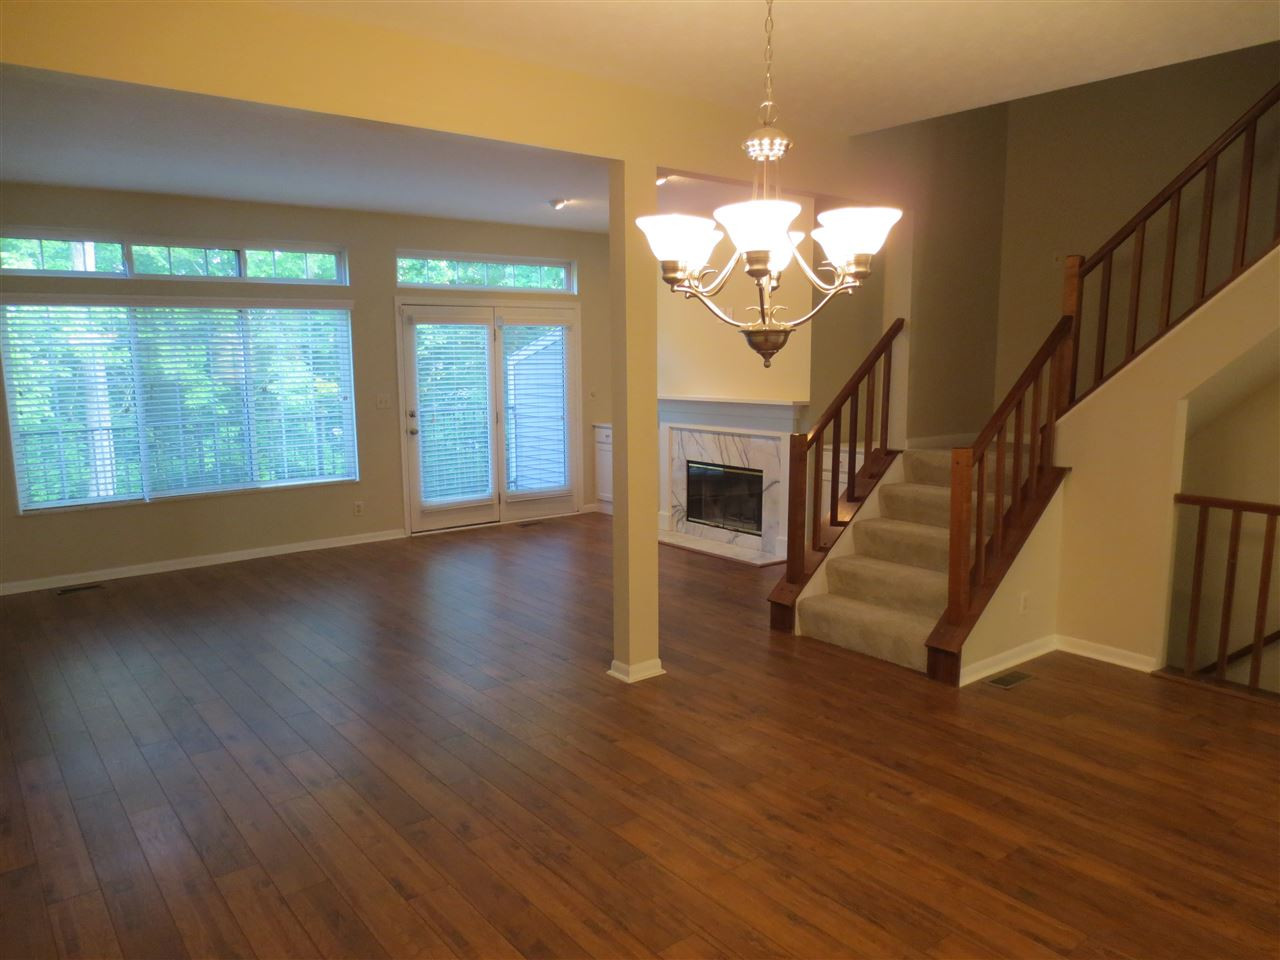 Photo 3 for 10809 Muirfield Ct Union, KY 41091